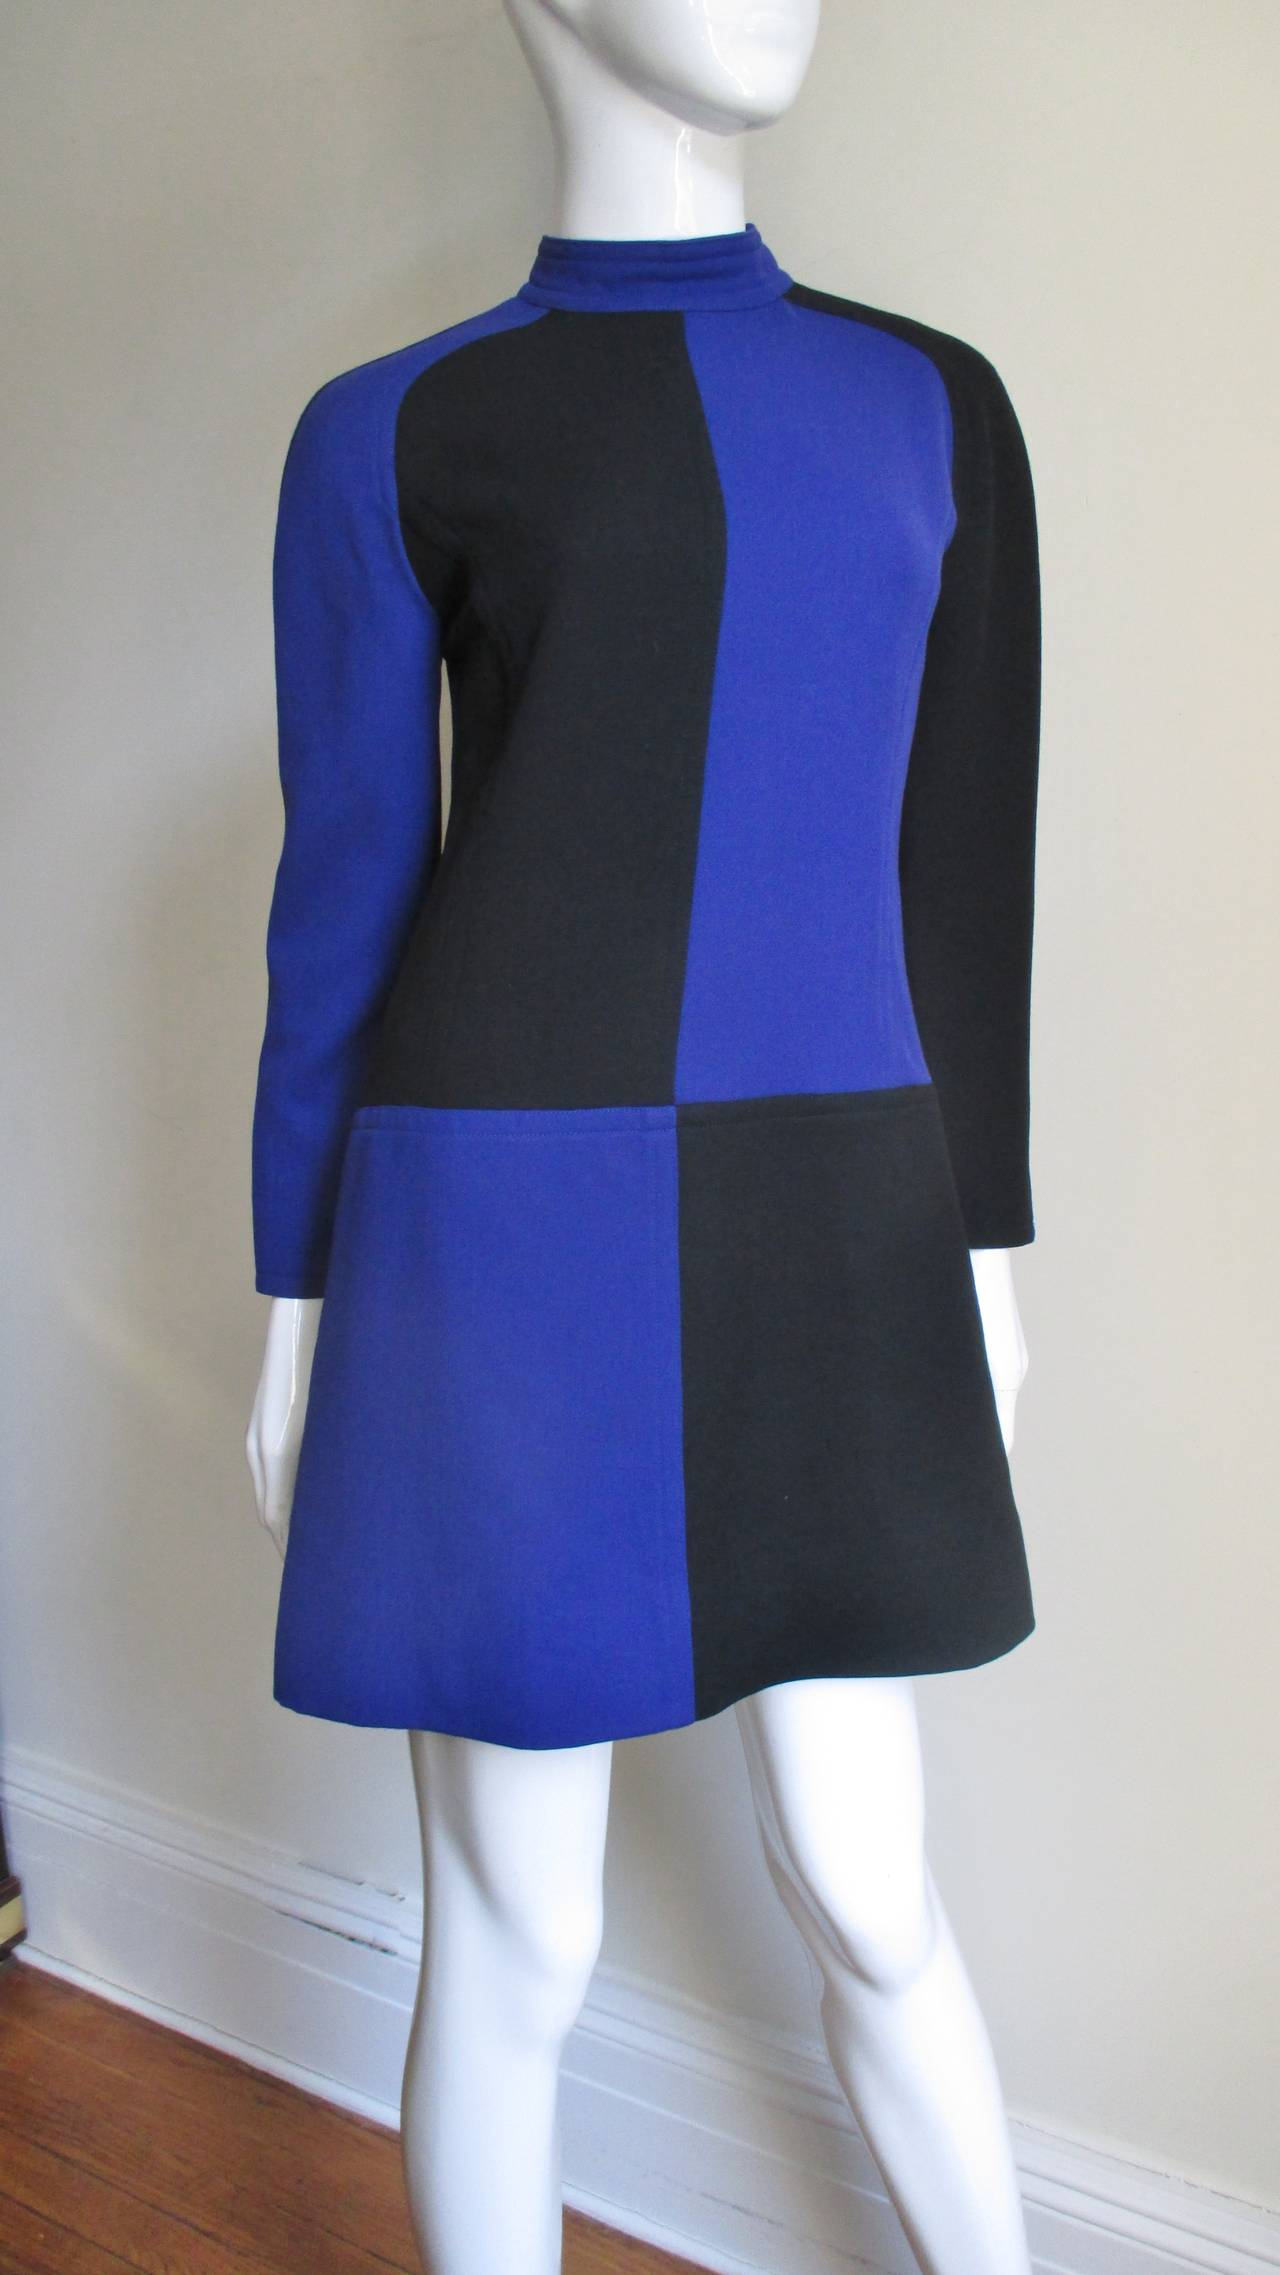 1970s Courreges Color Block Dress In Excellent Condition For Sale In New York, NY